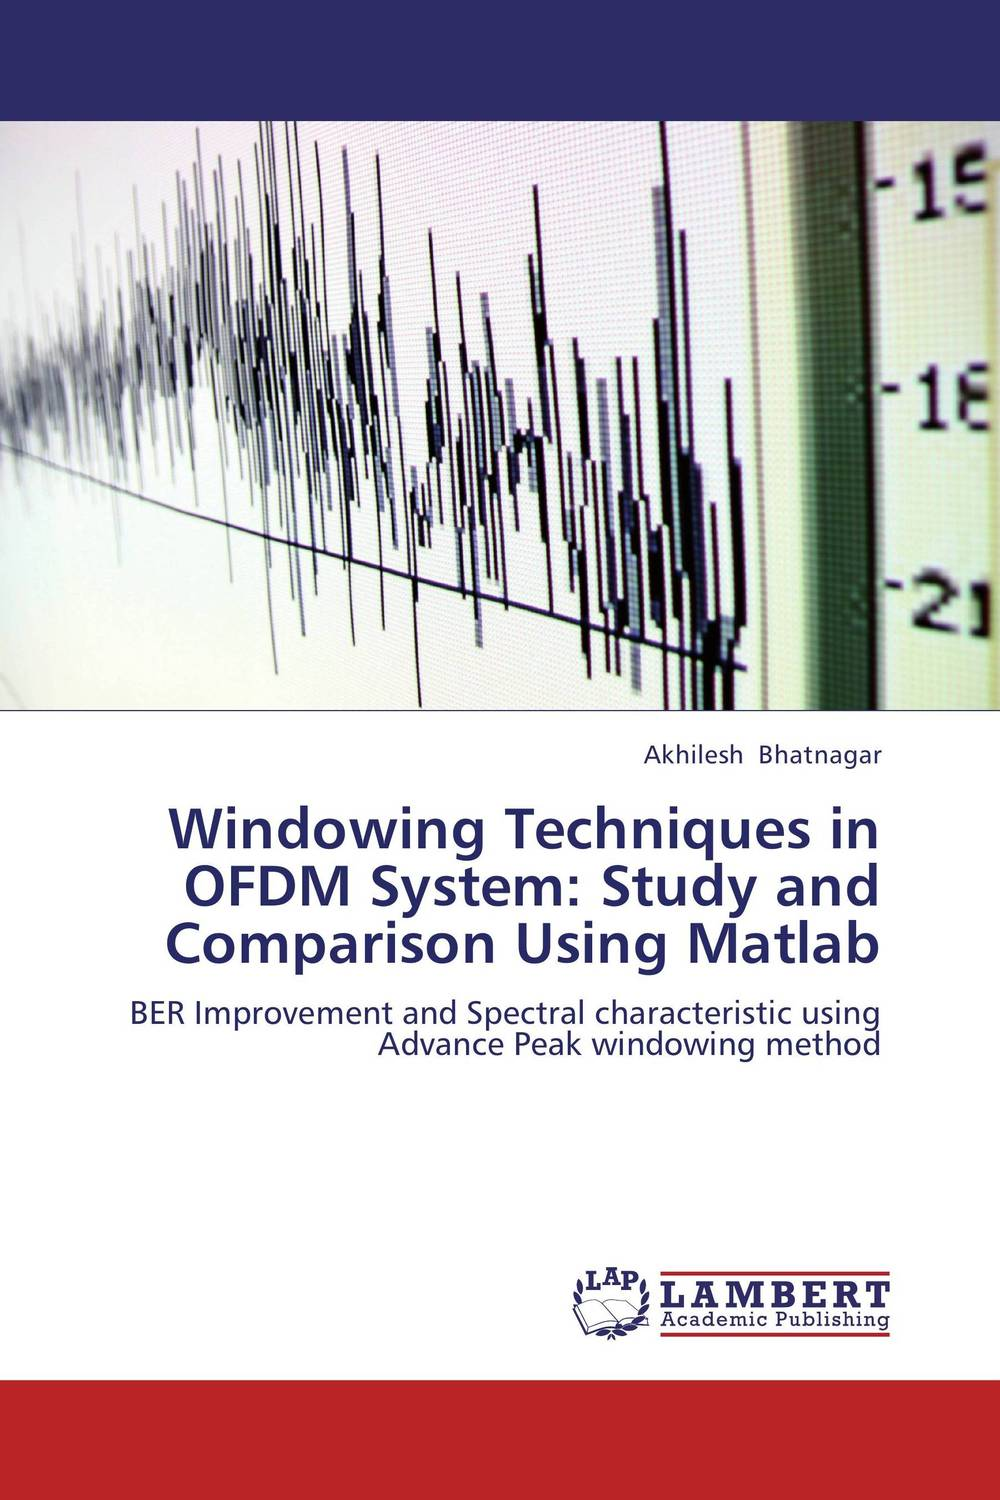 Windowing Techniques in OFDM System: Study and Comparison Using Matlab  anuj kumar sharma and vipul sharma ofdm communication system